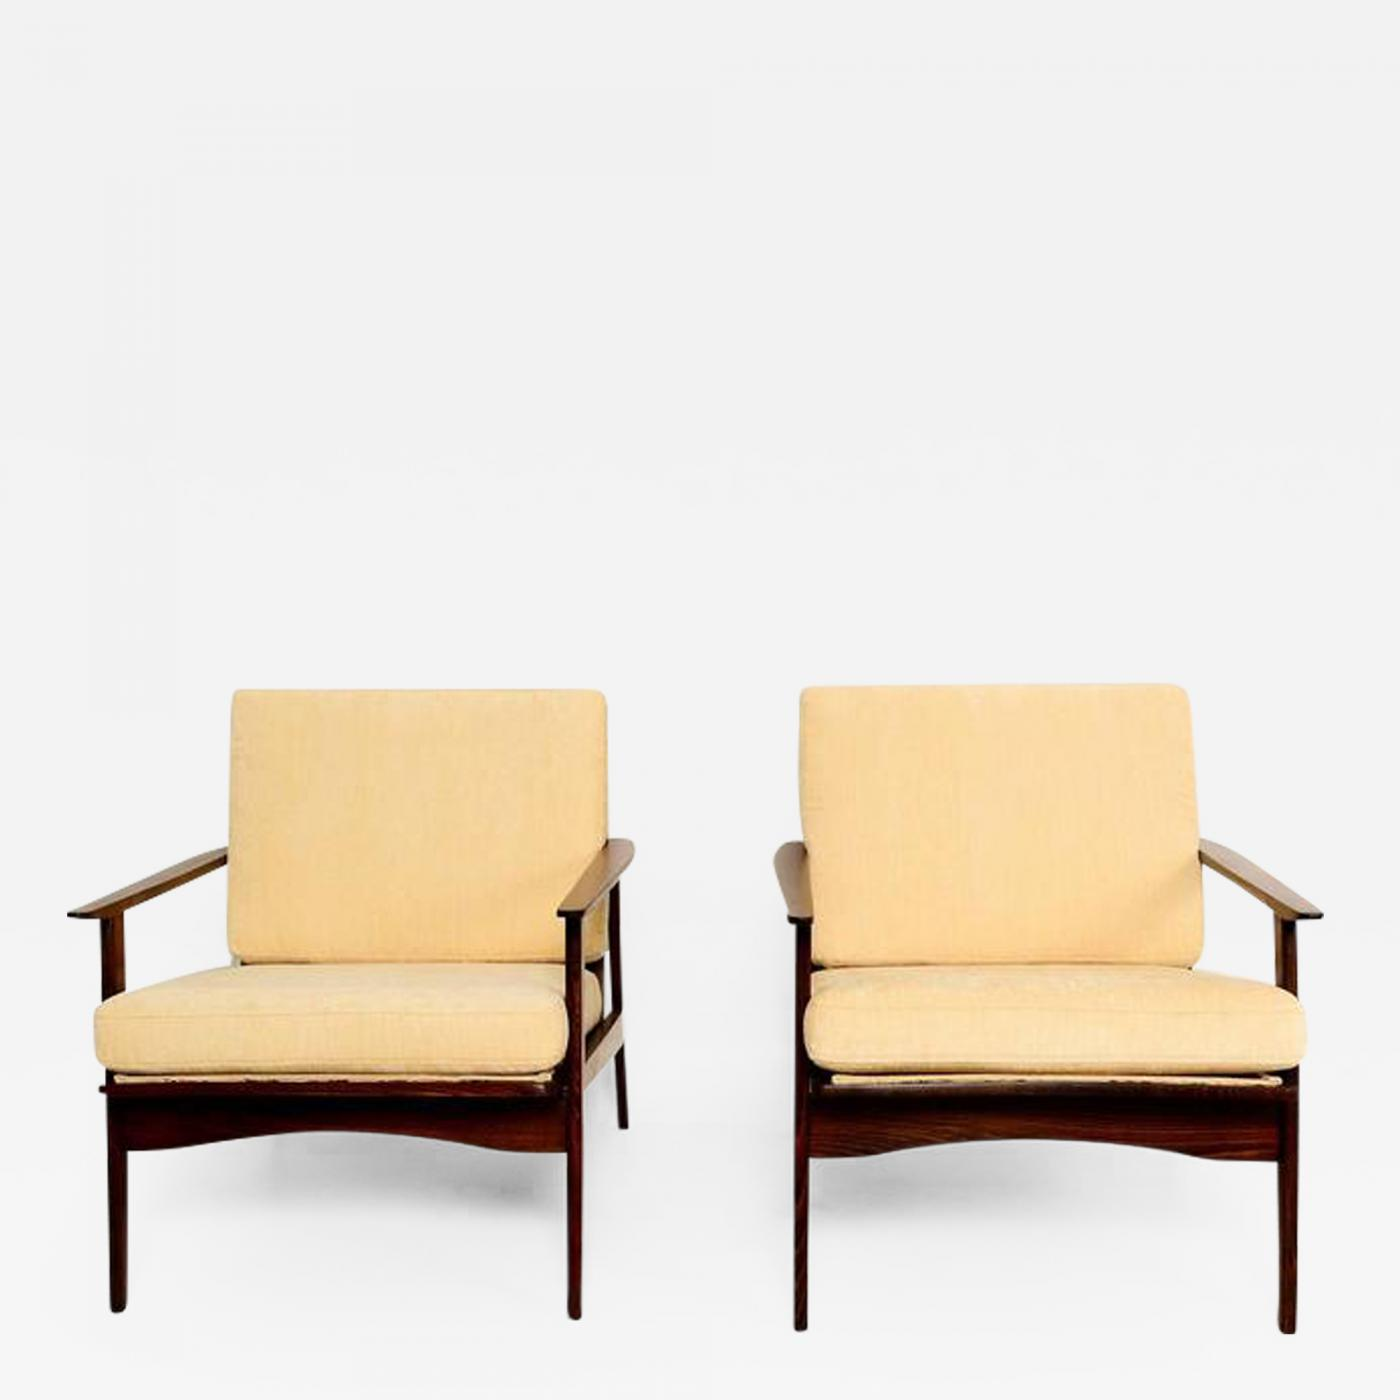 Outstanding Danish Mid Century Modern Pair Of Scandinavian Easy Chairs Beatyapartments Chair Design Images Beatyapartmentscom